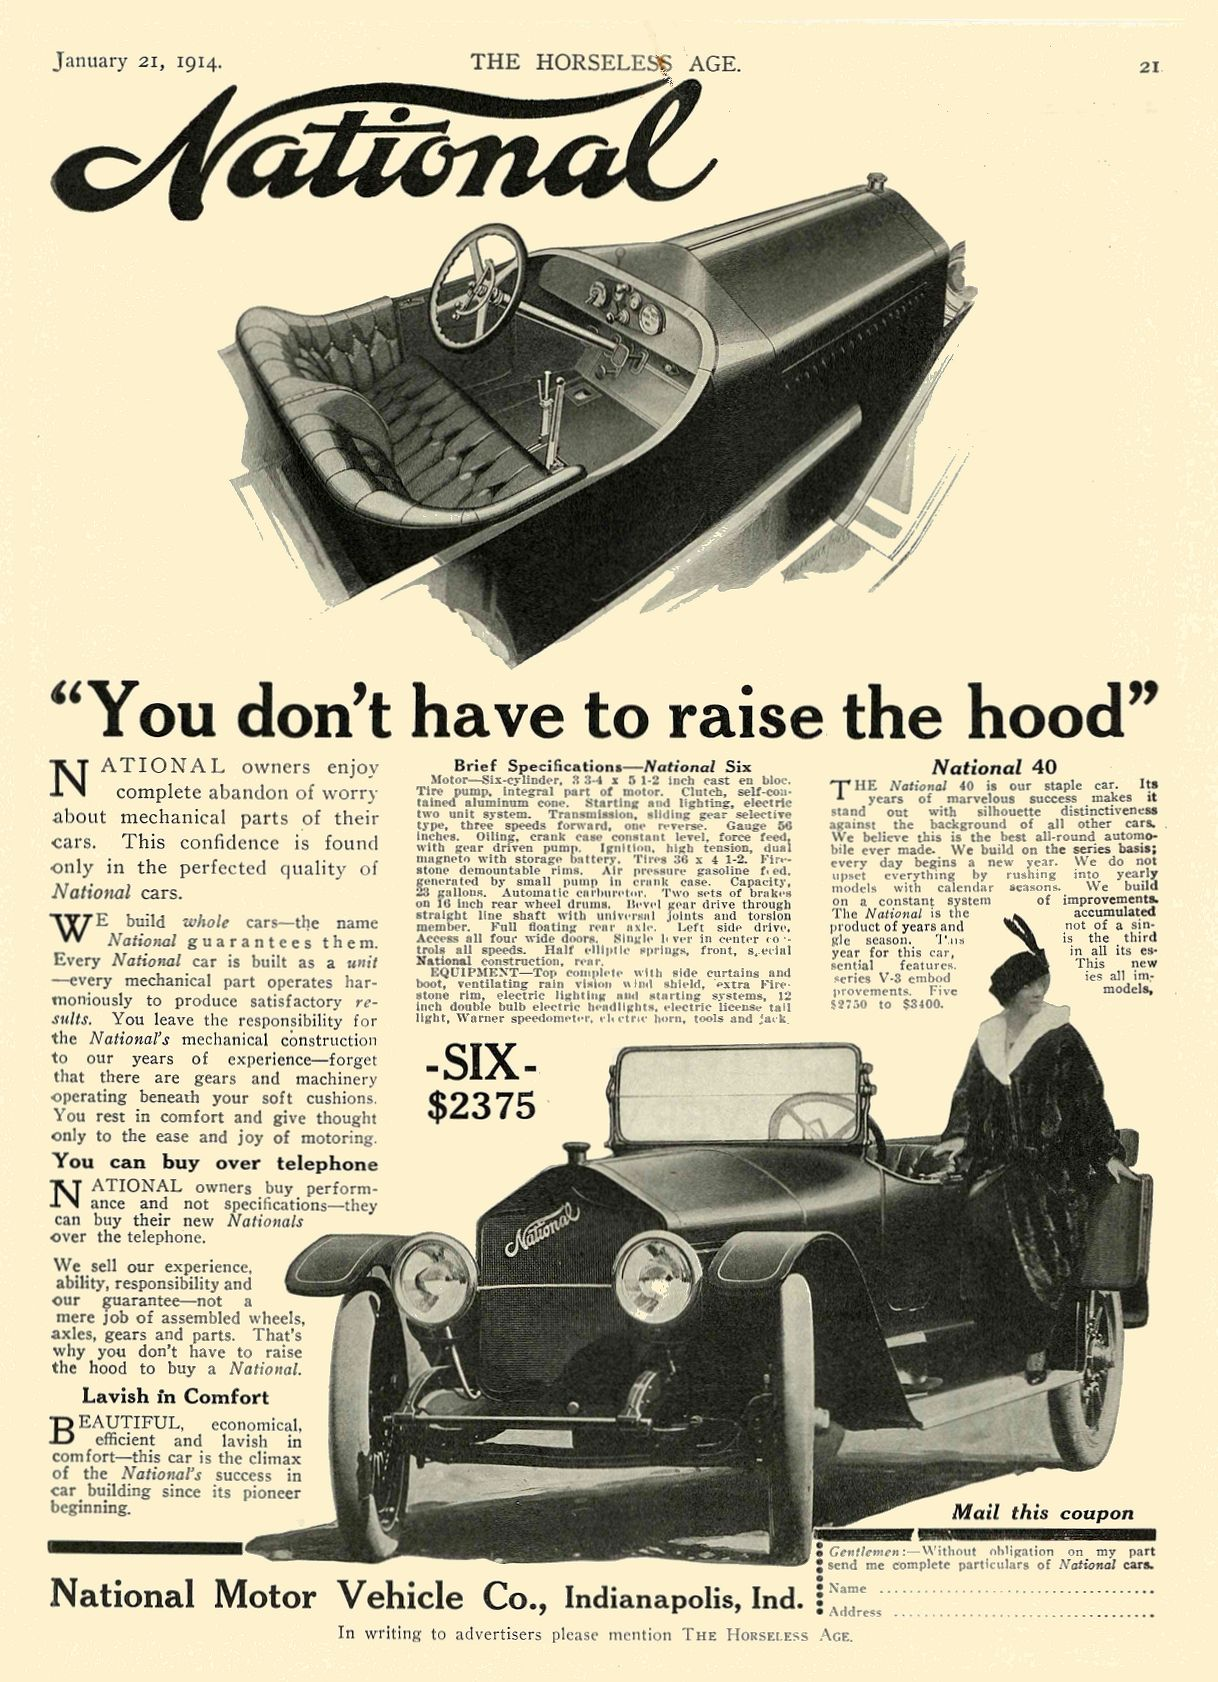 """1914 1 21 NATIONAL """"You don't have to raise the hood"""" National Motor Vehicle Co. Indianapolis, IND THE HORSELESS AGE January 21, 1914 8.5″x11.75″ page 21"""